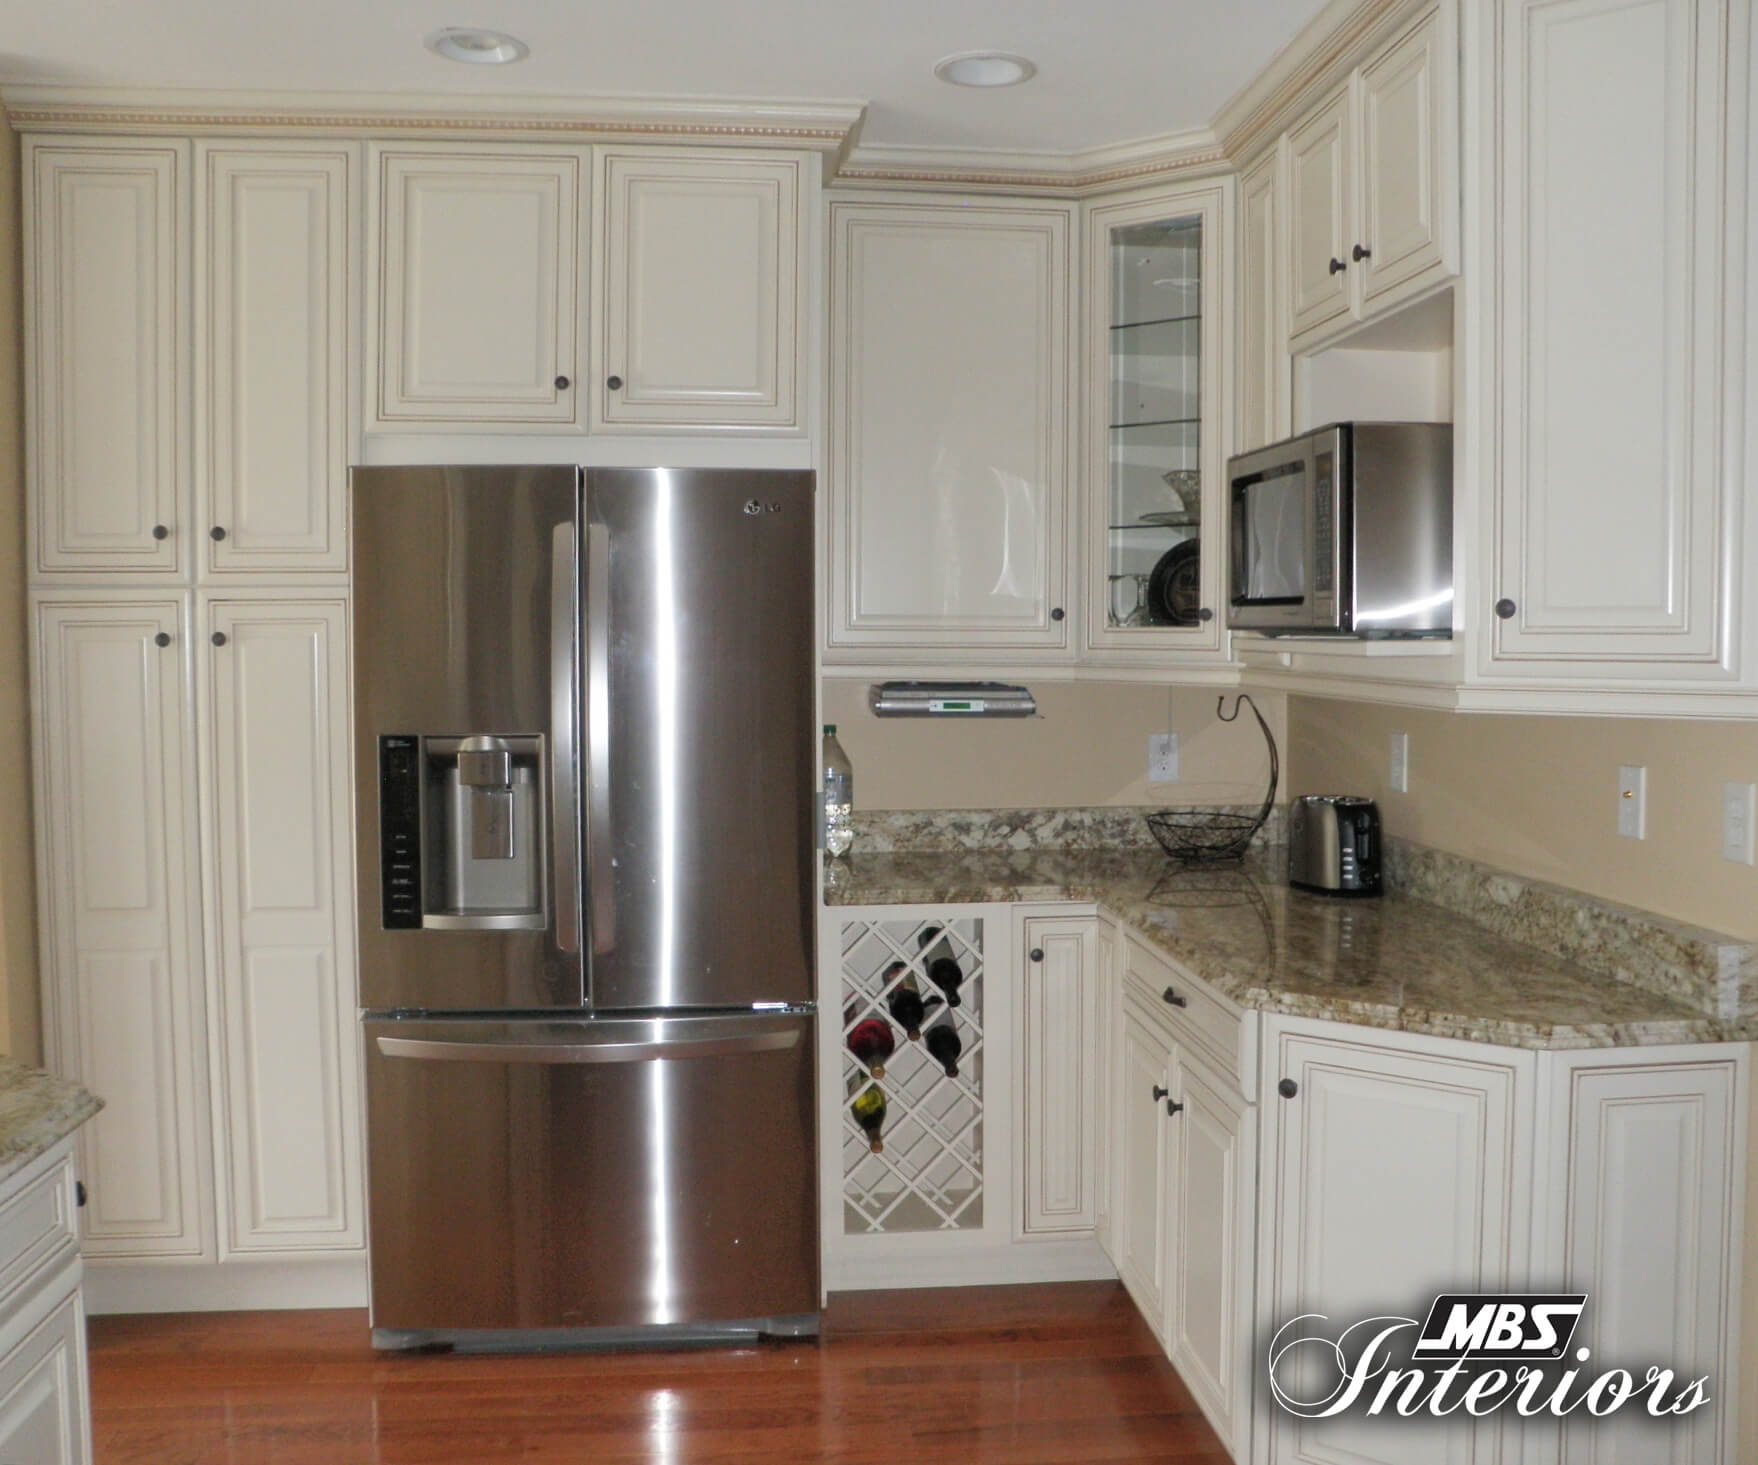 MBS Interiors Was Born From A Need To Provide Interior Design Solutions For  Homeowners, Contractors And Remodeling Customers Of Modern Builders Supply  ...